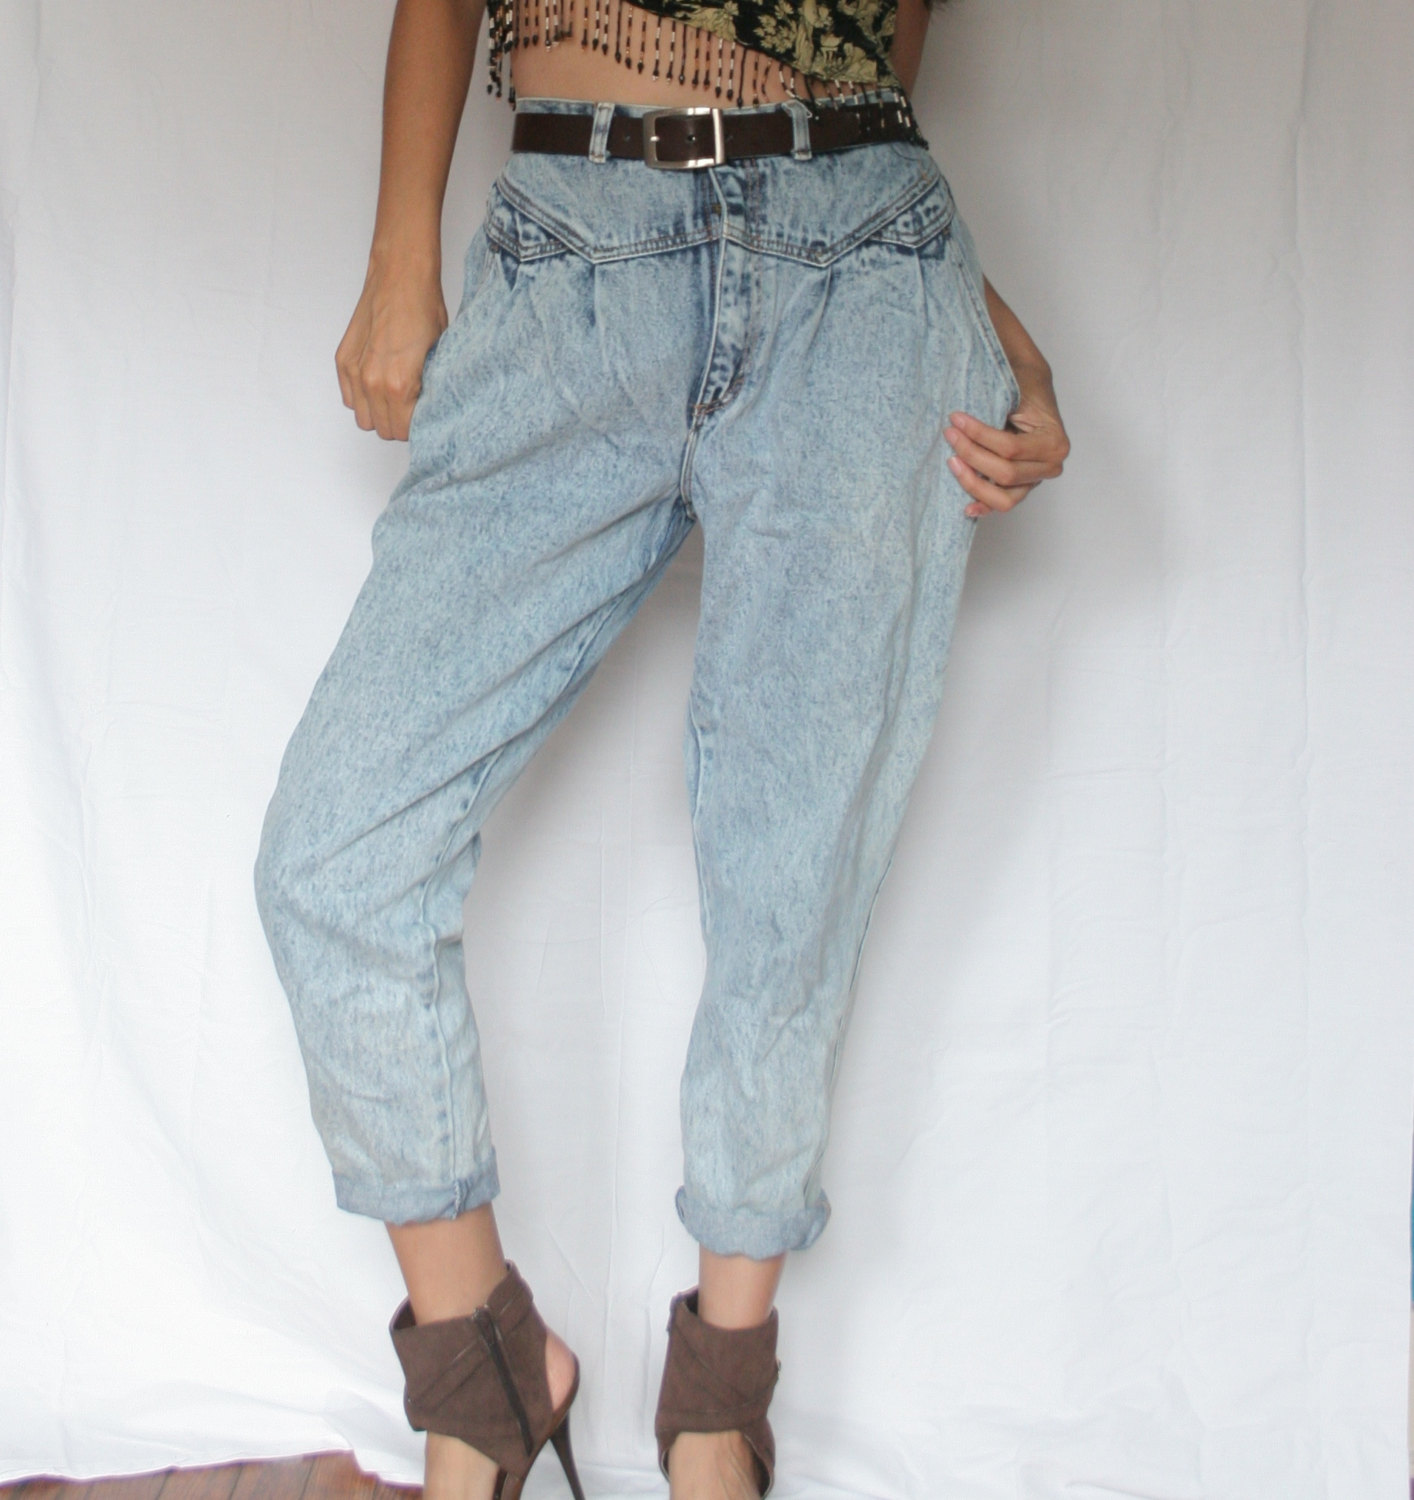 395e54c6 Womens Vintage 80's Acid wash New Wave high waist Gitano jeans/ BOYFRIEND  ACIDWASH JEANS/ Gitano Jeans